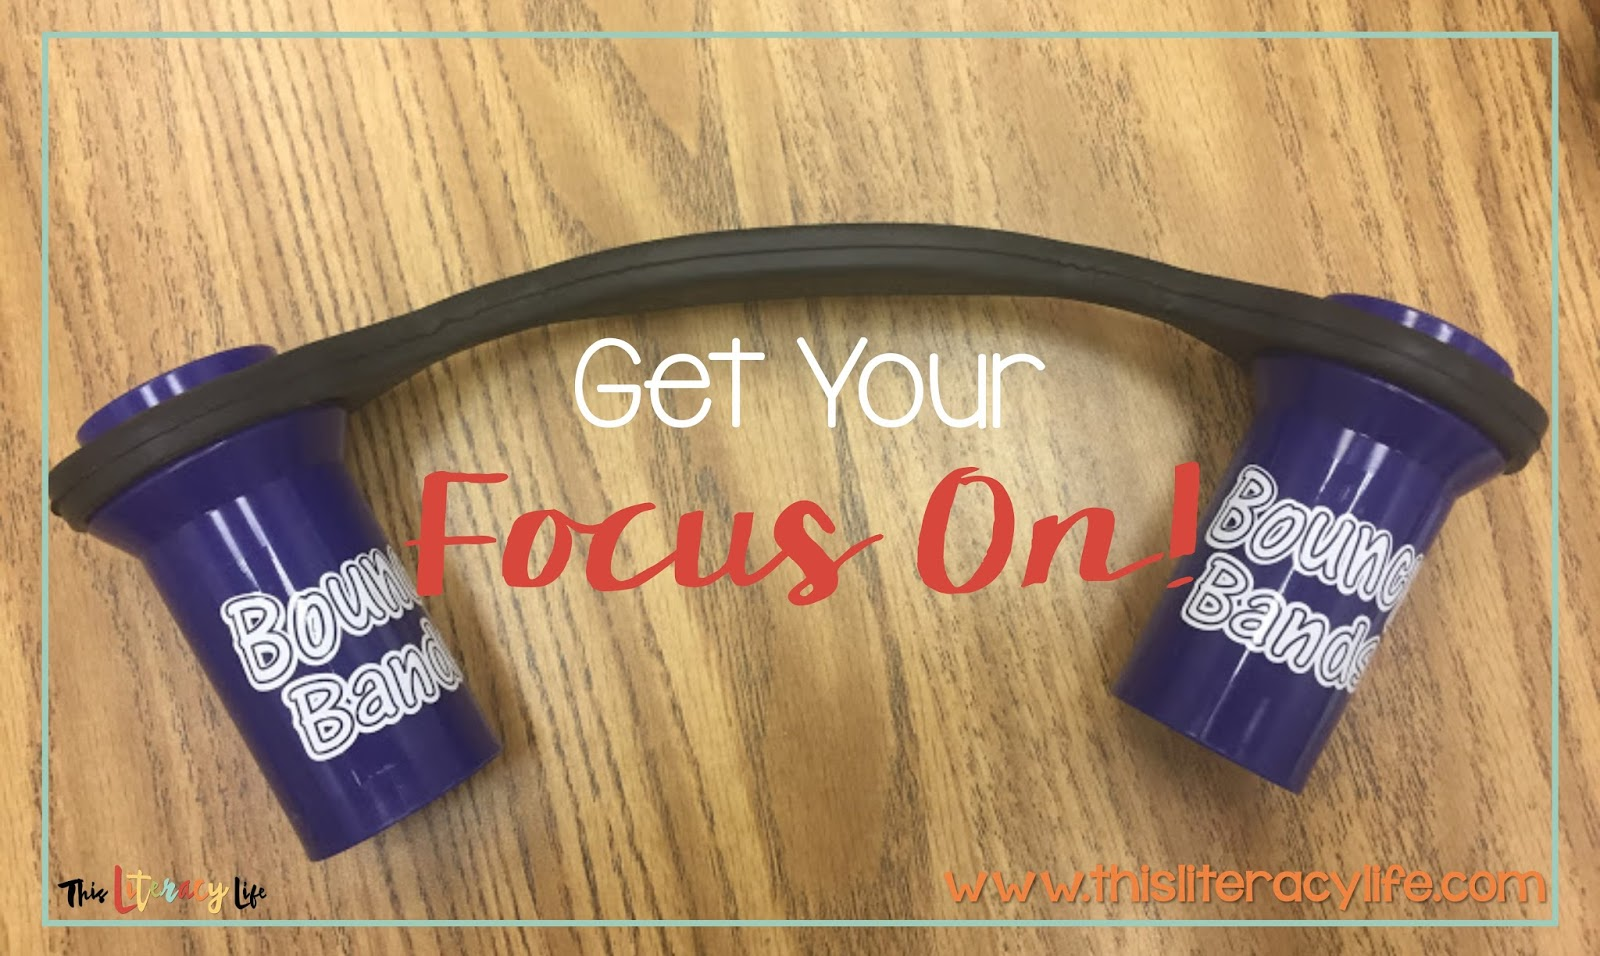 Bouncy Bands are a great tool to help students pay attention to their work and focus on the task at hand.